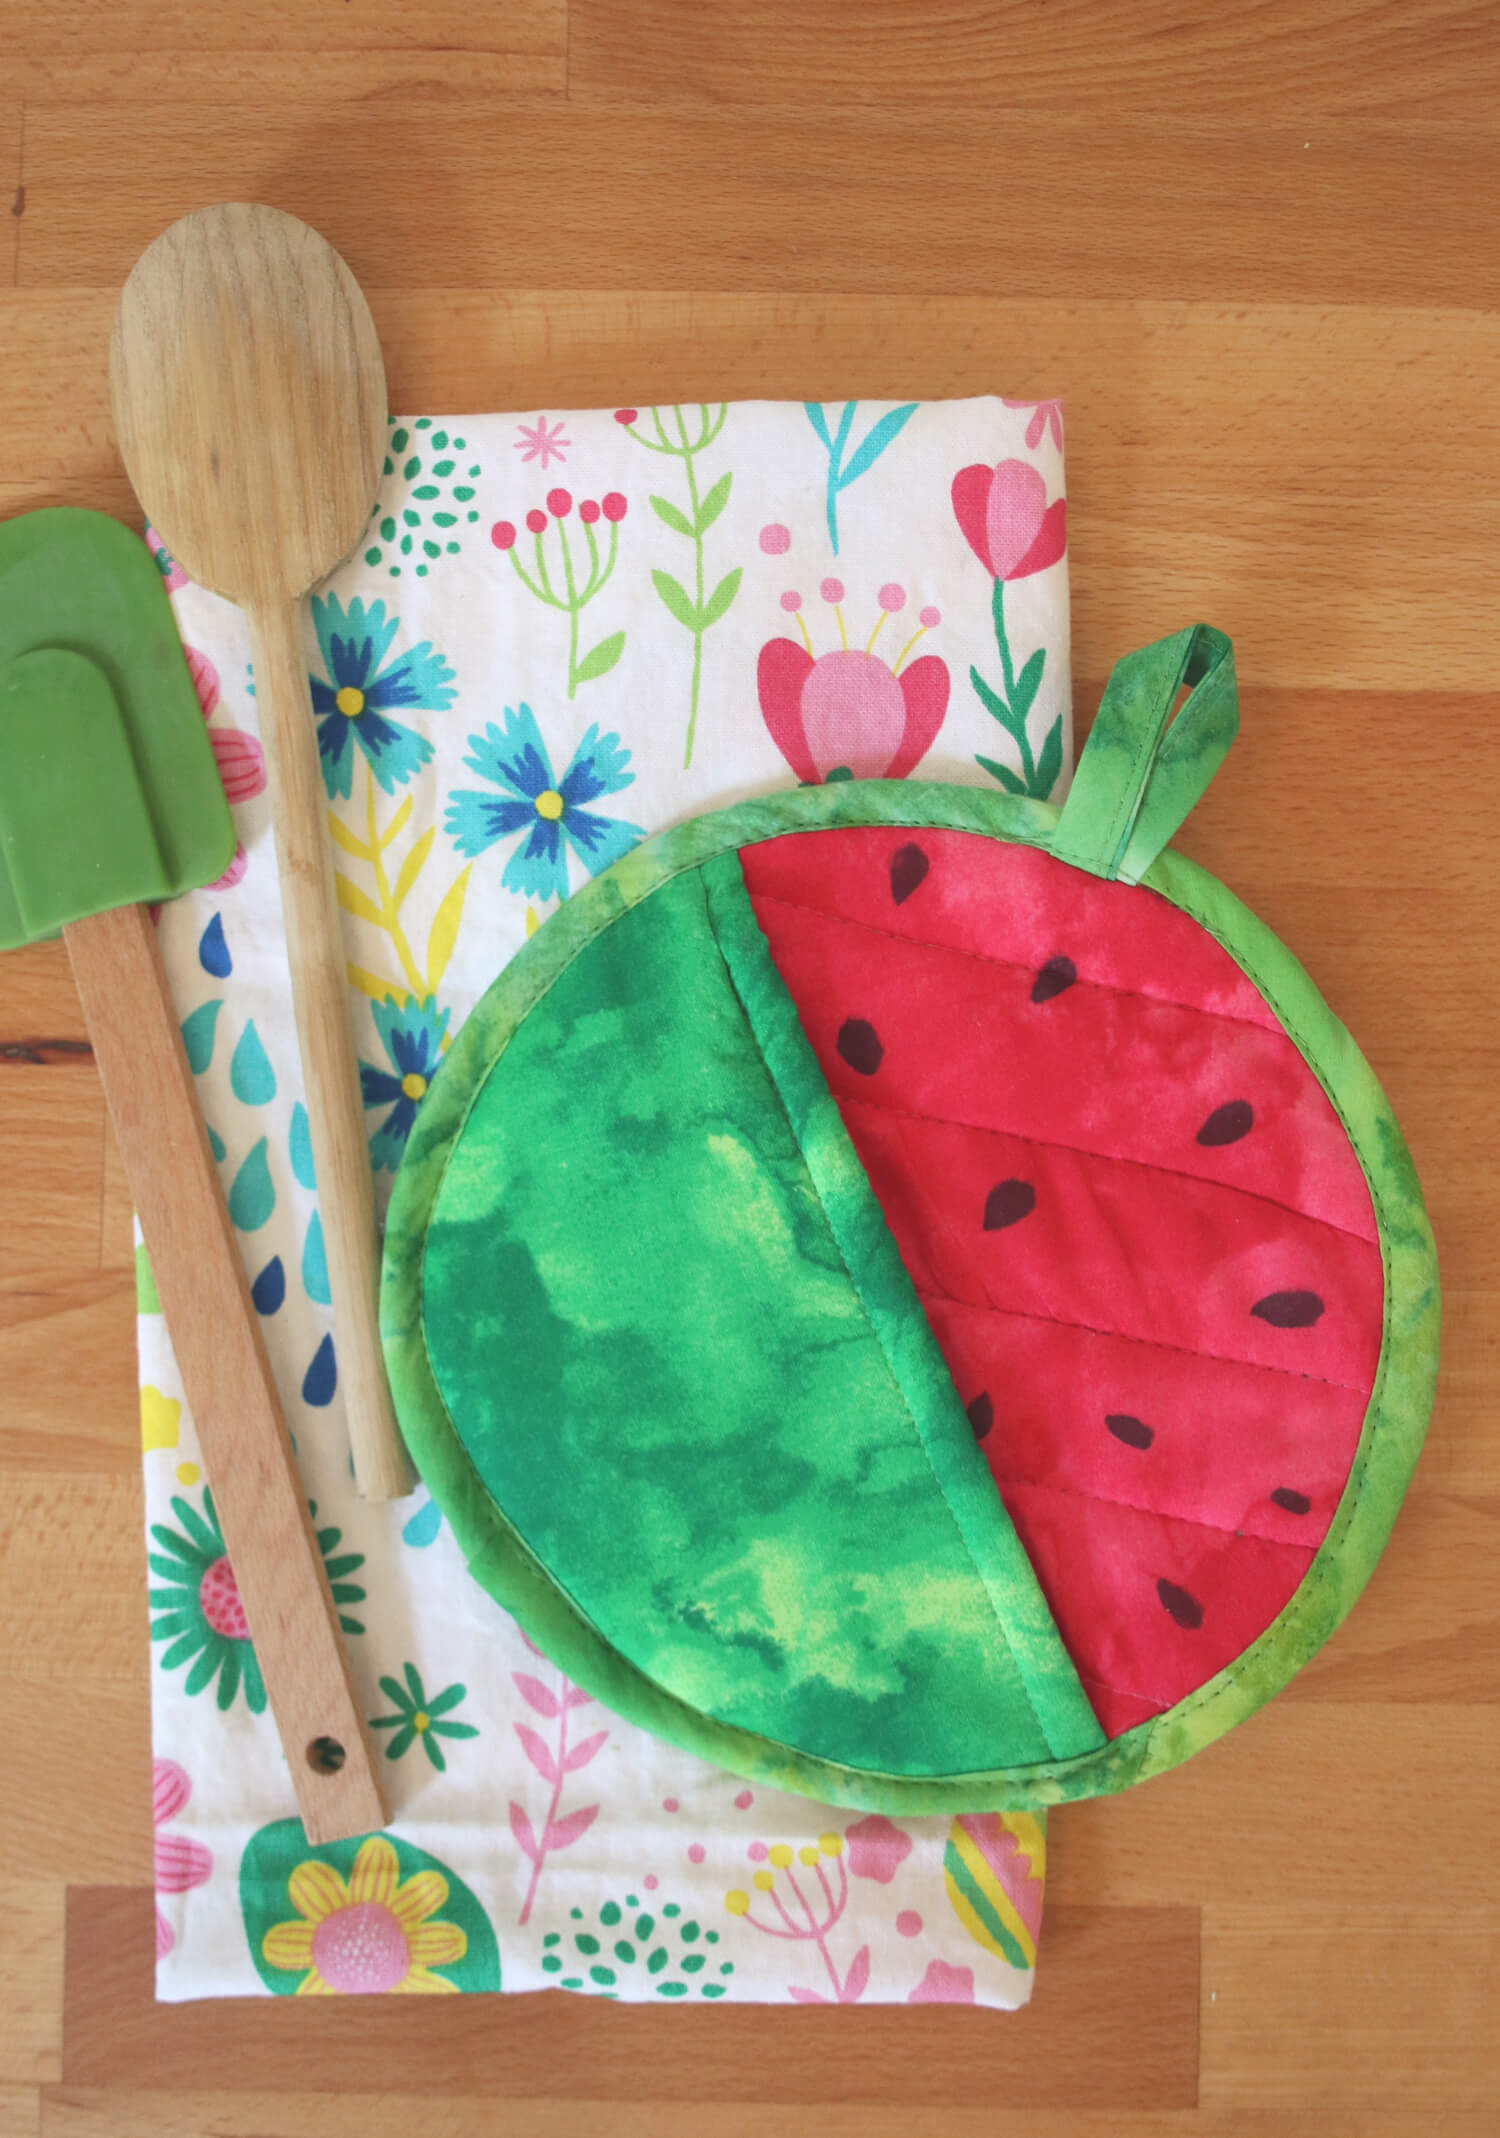 WATERMELON POTHOLDER DIY from A Beautiful Mess!